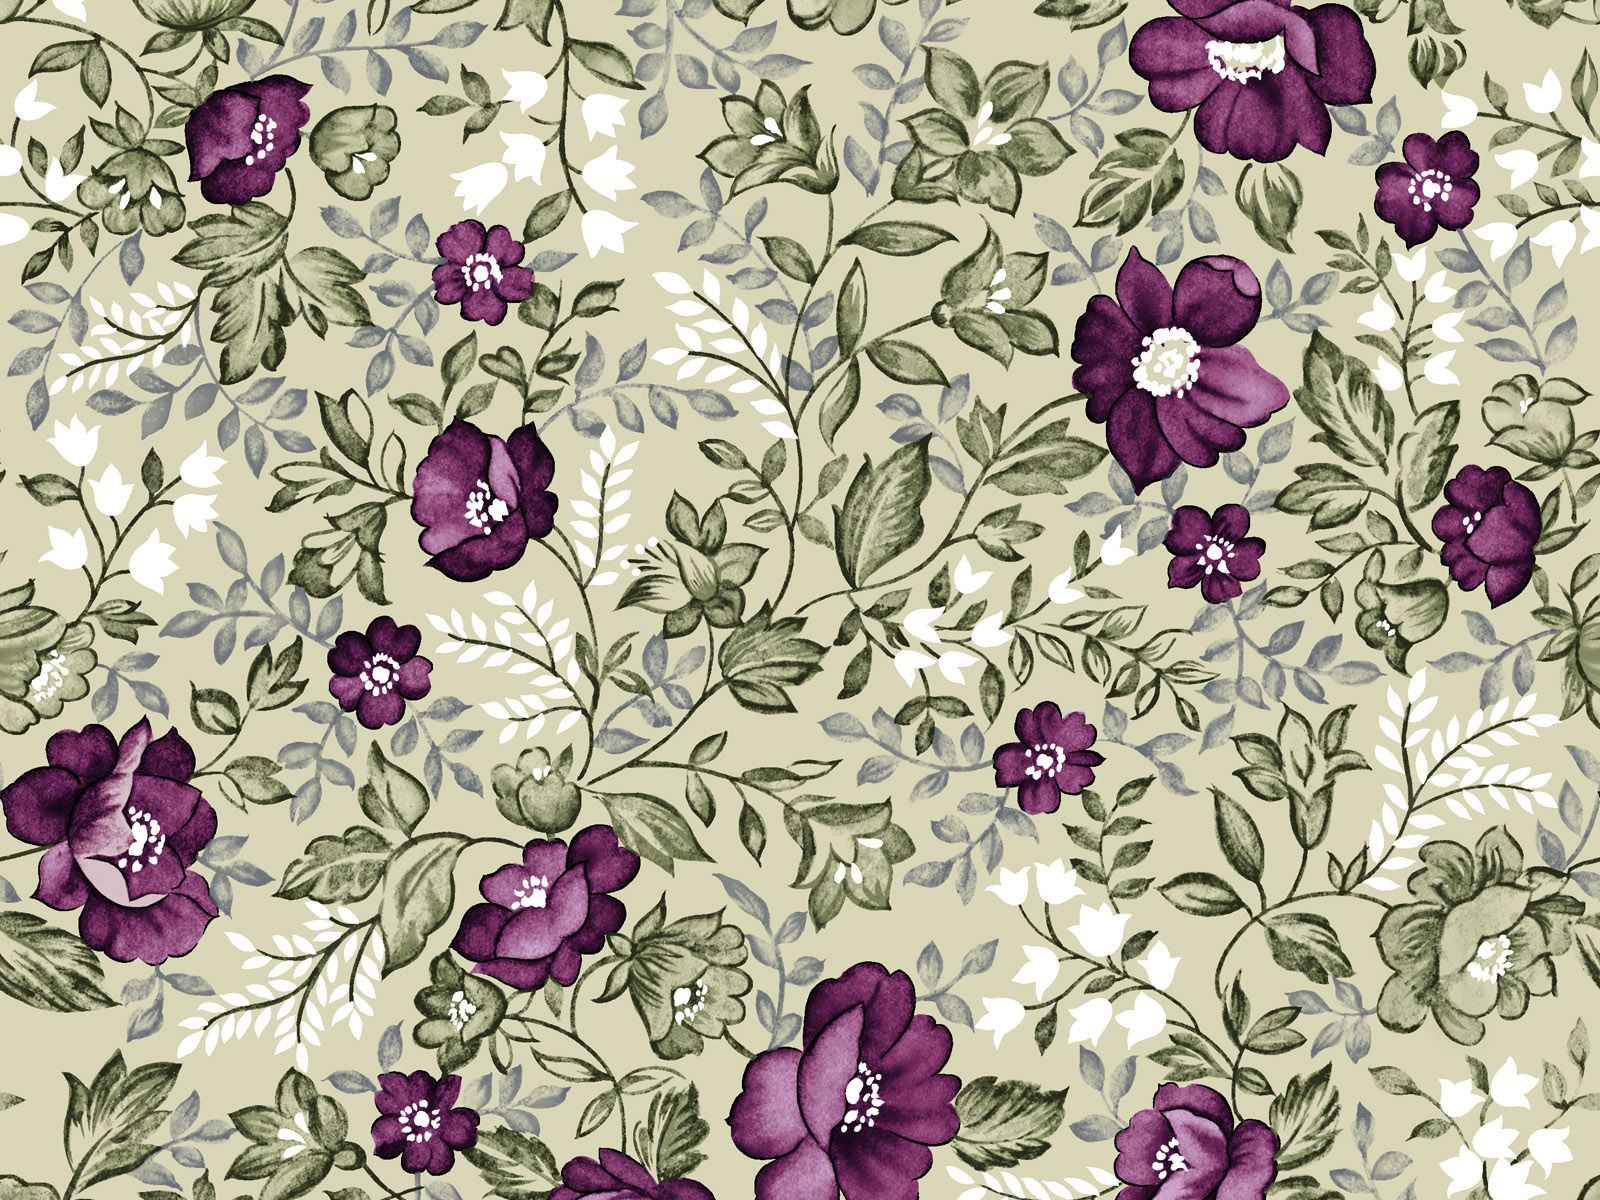 Purple vintage floral pattern - photo#25